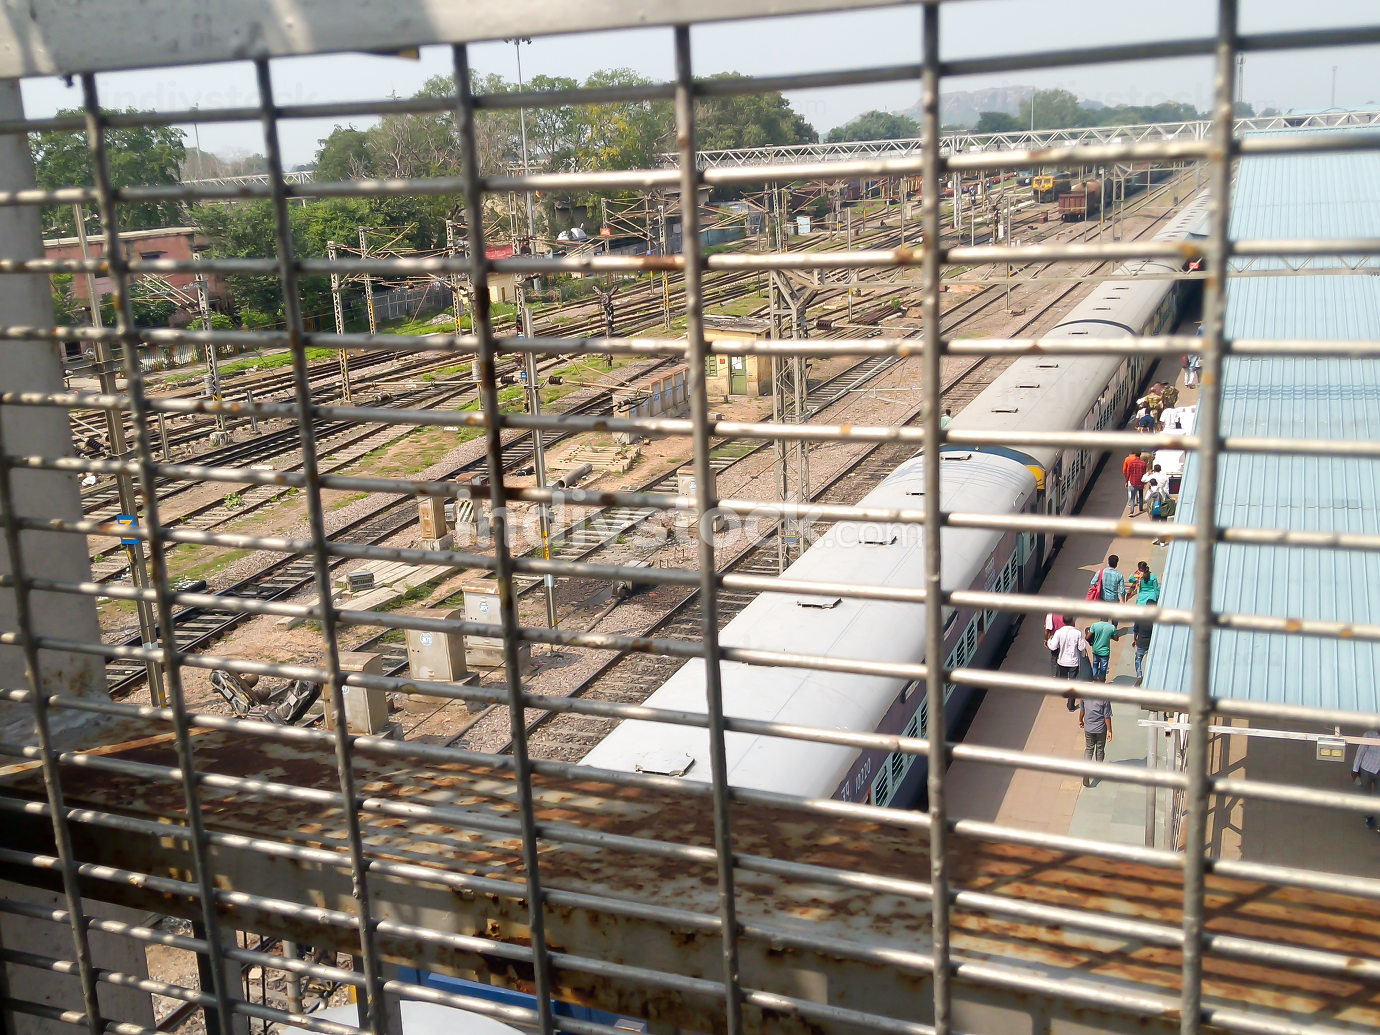 Cantonment railway station India South Asia 2019 Railway station view through Metal Frame Structure